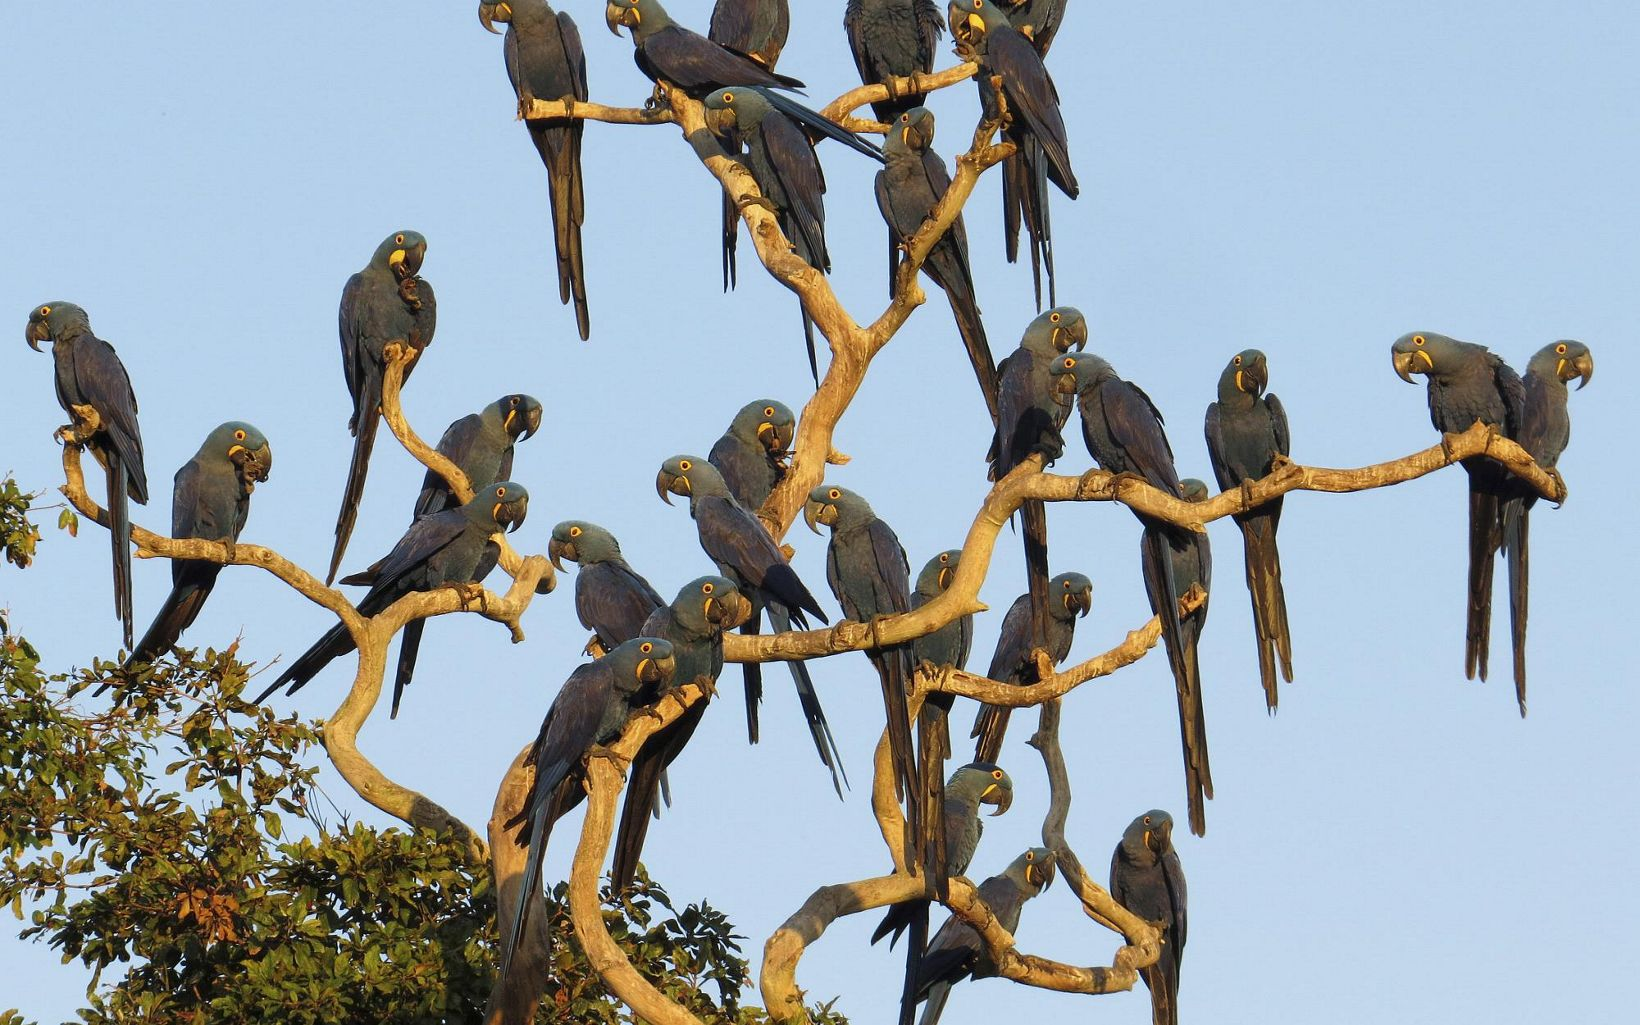 A large group of blue macaws sitting in a tree.